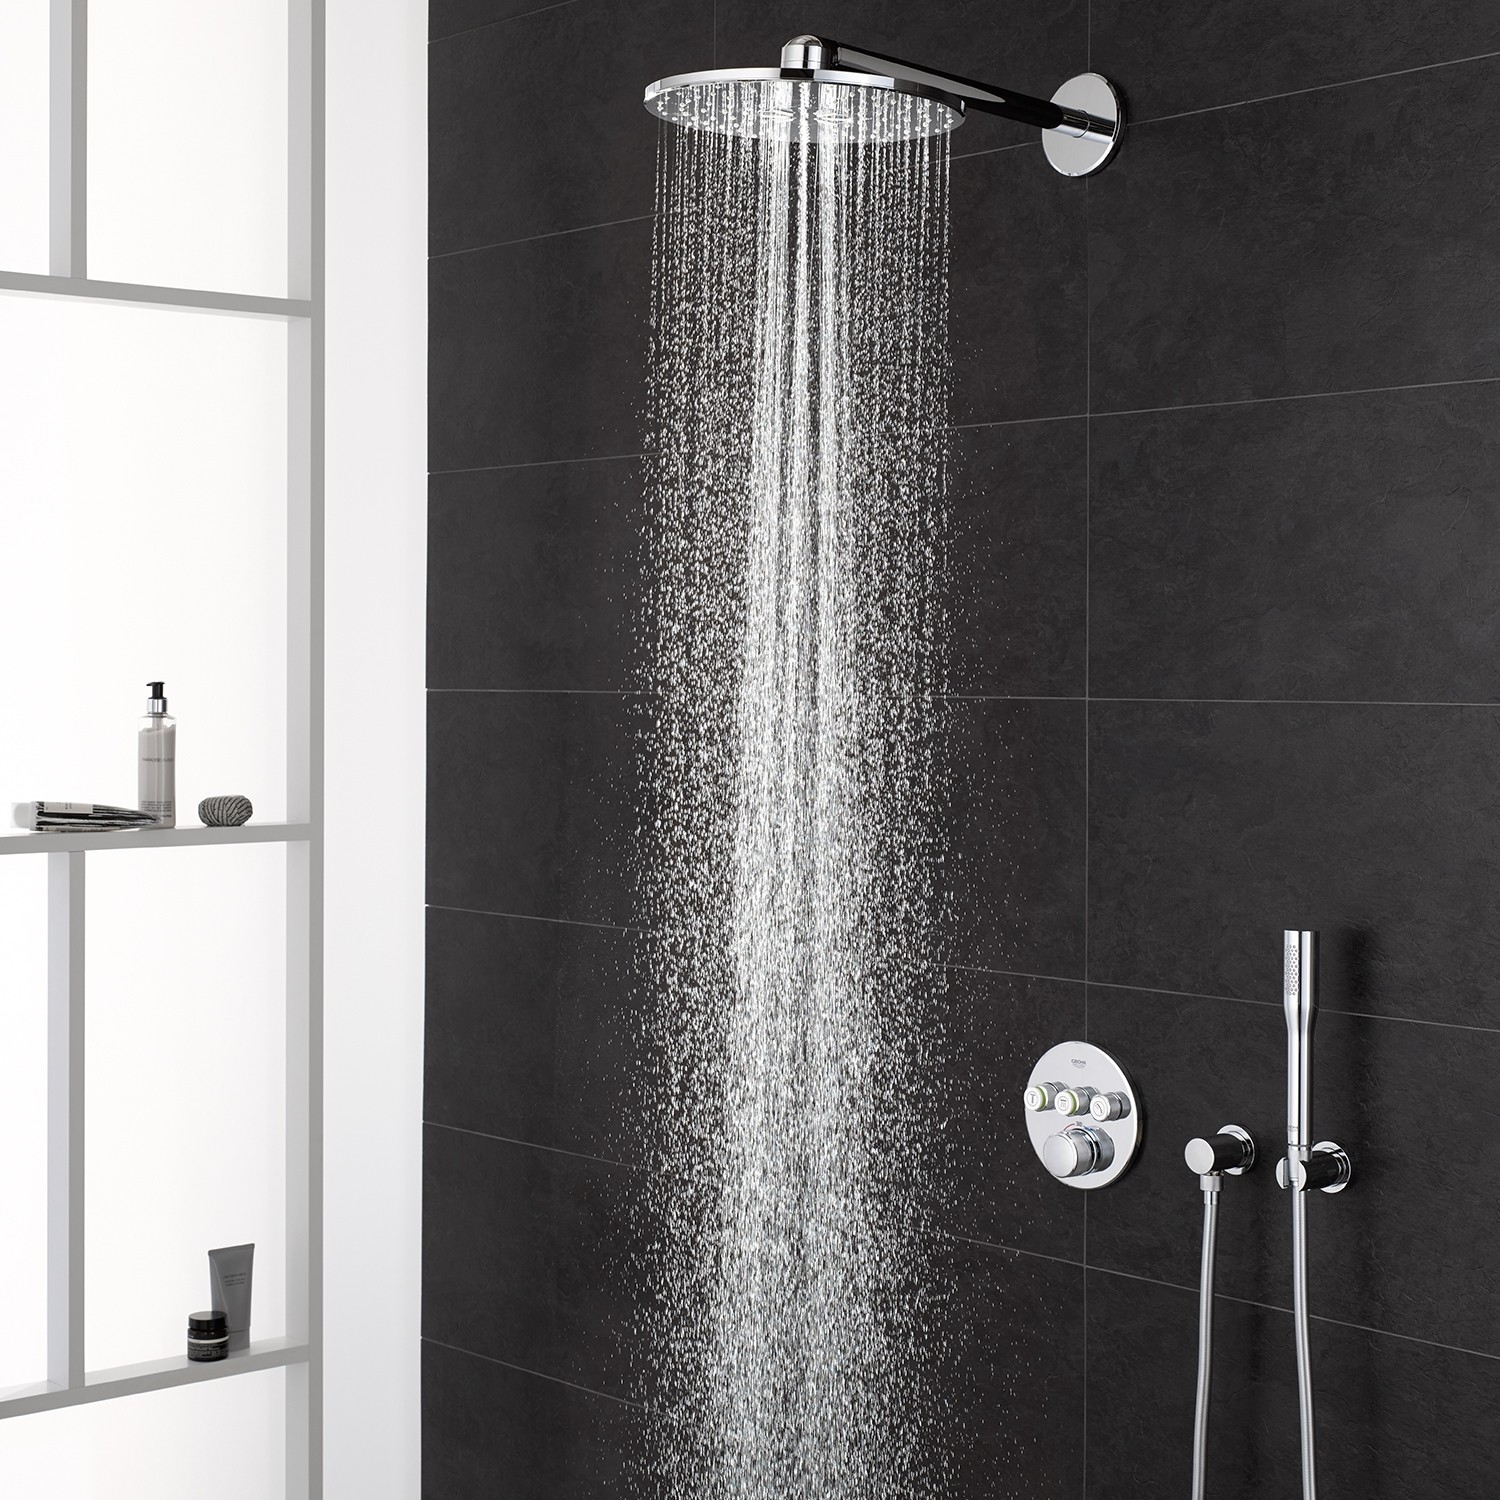 grohe grohtherm smartcontrol syst me de douche rainshower 310 smart active avec mitigeur. Black Bedroom Furniture Sets. Home Design Ideas